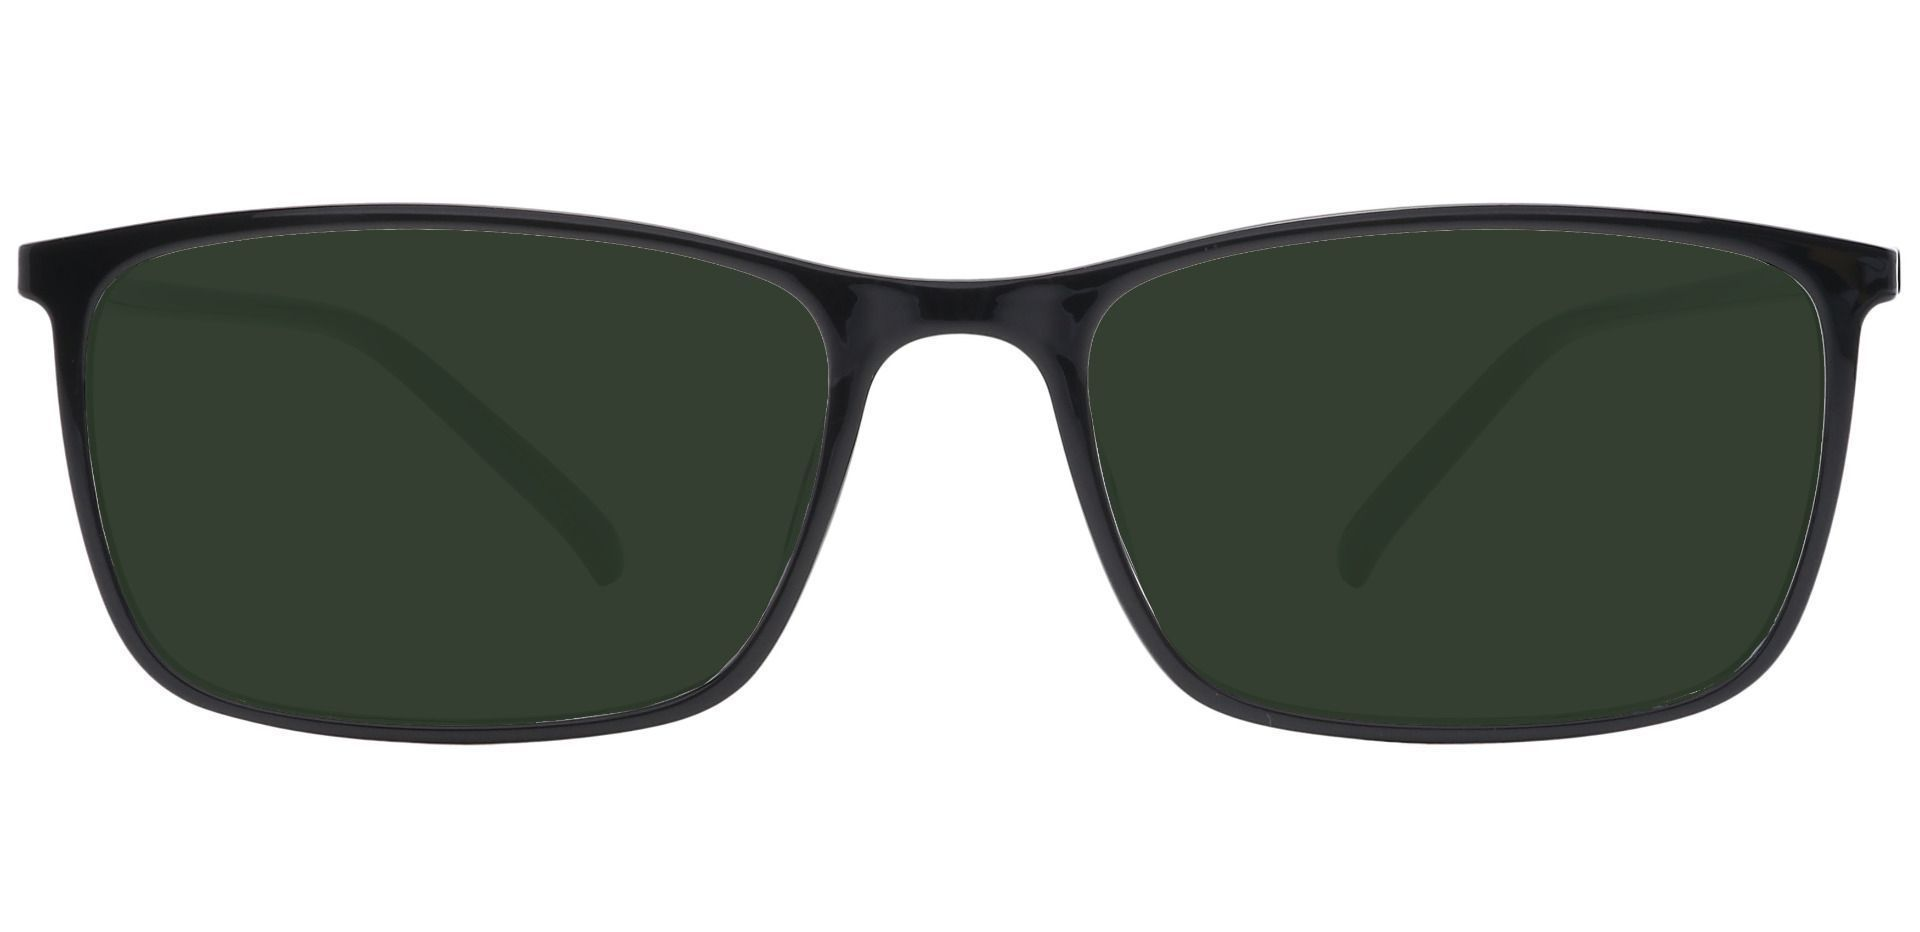 Fuji Rectangle Prescription Sunglasses - Black Frame With Green Lenses